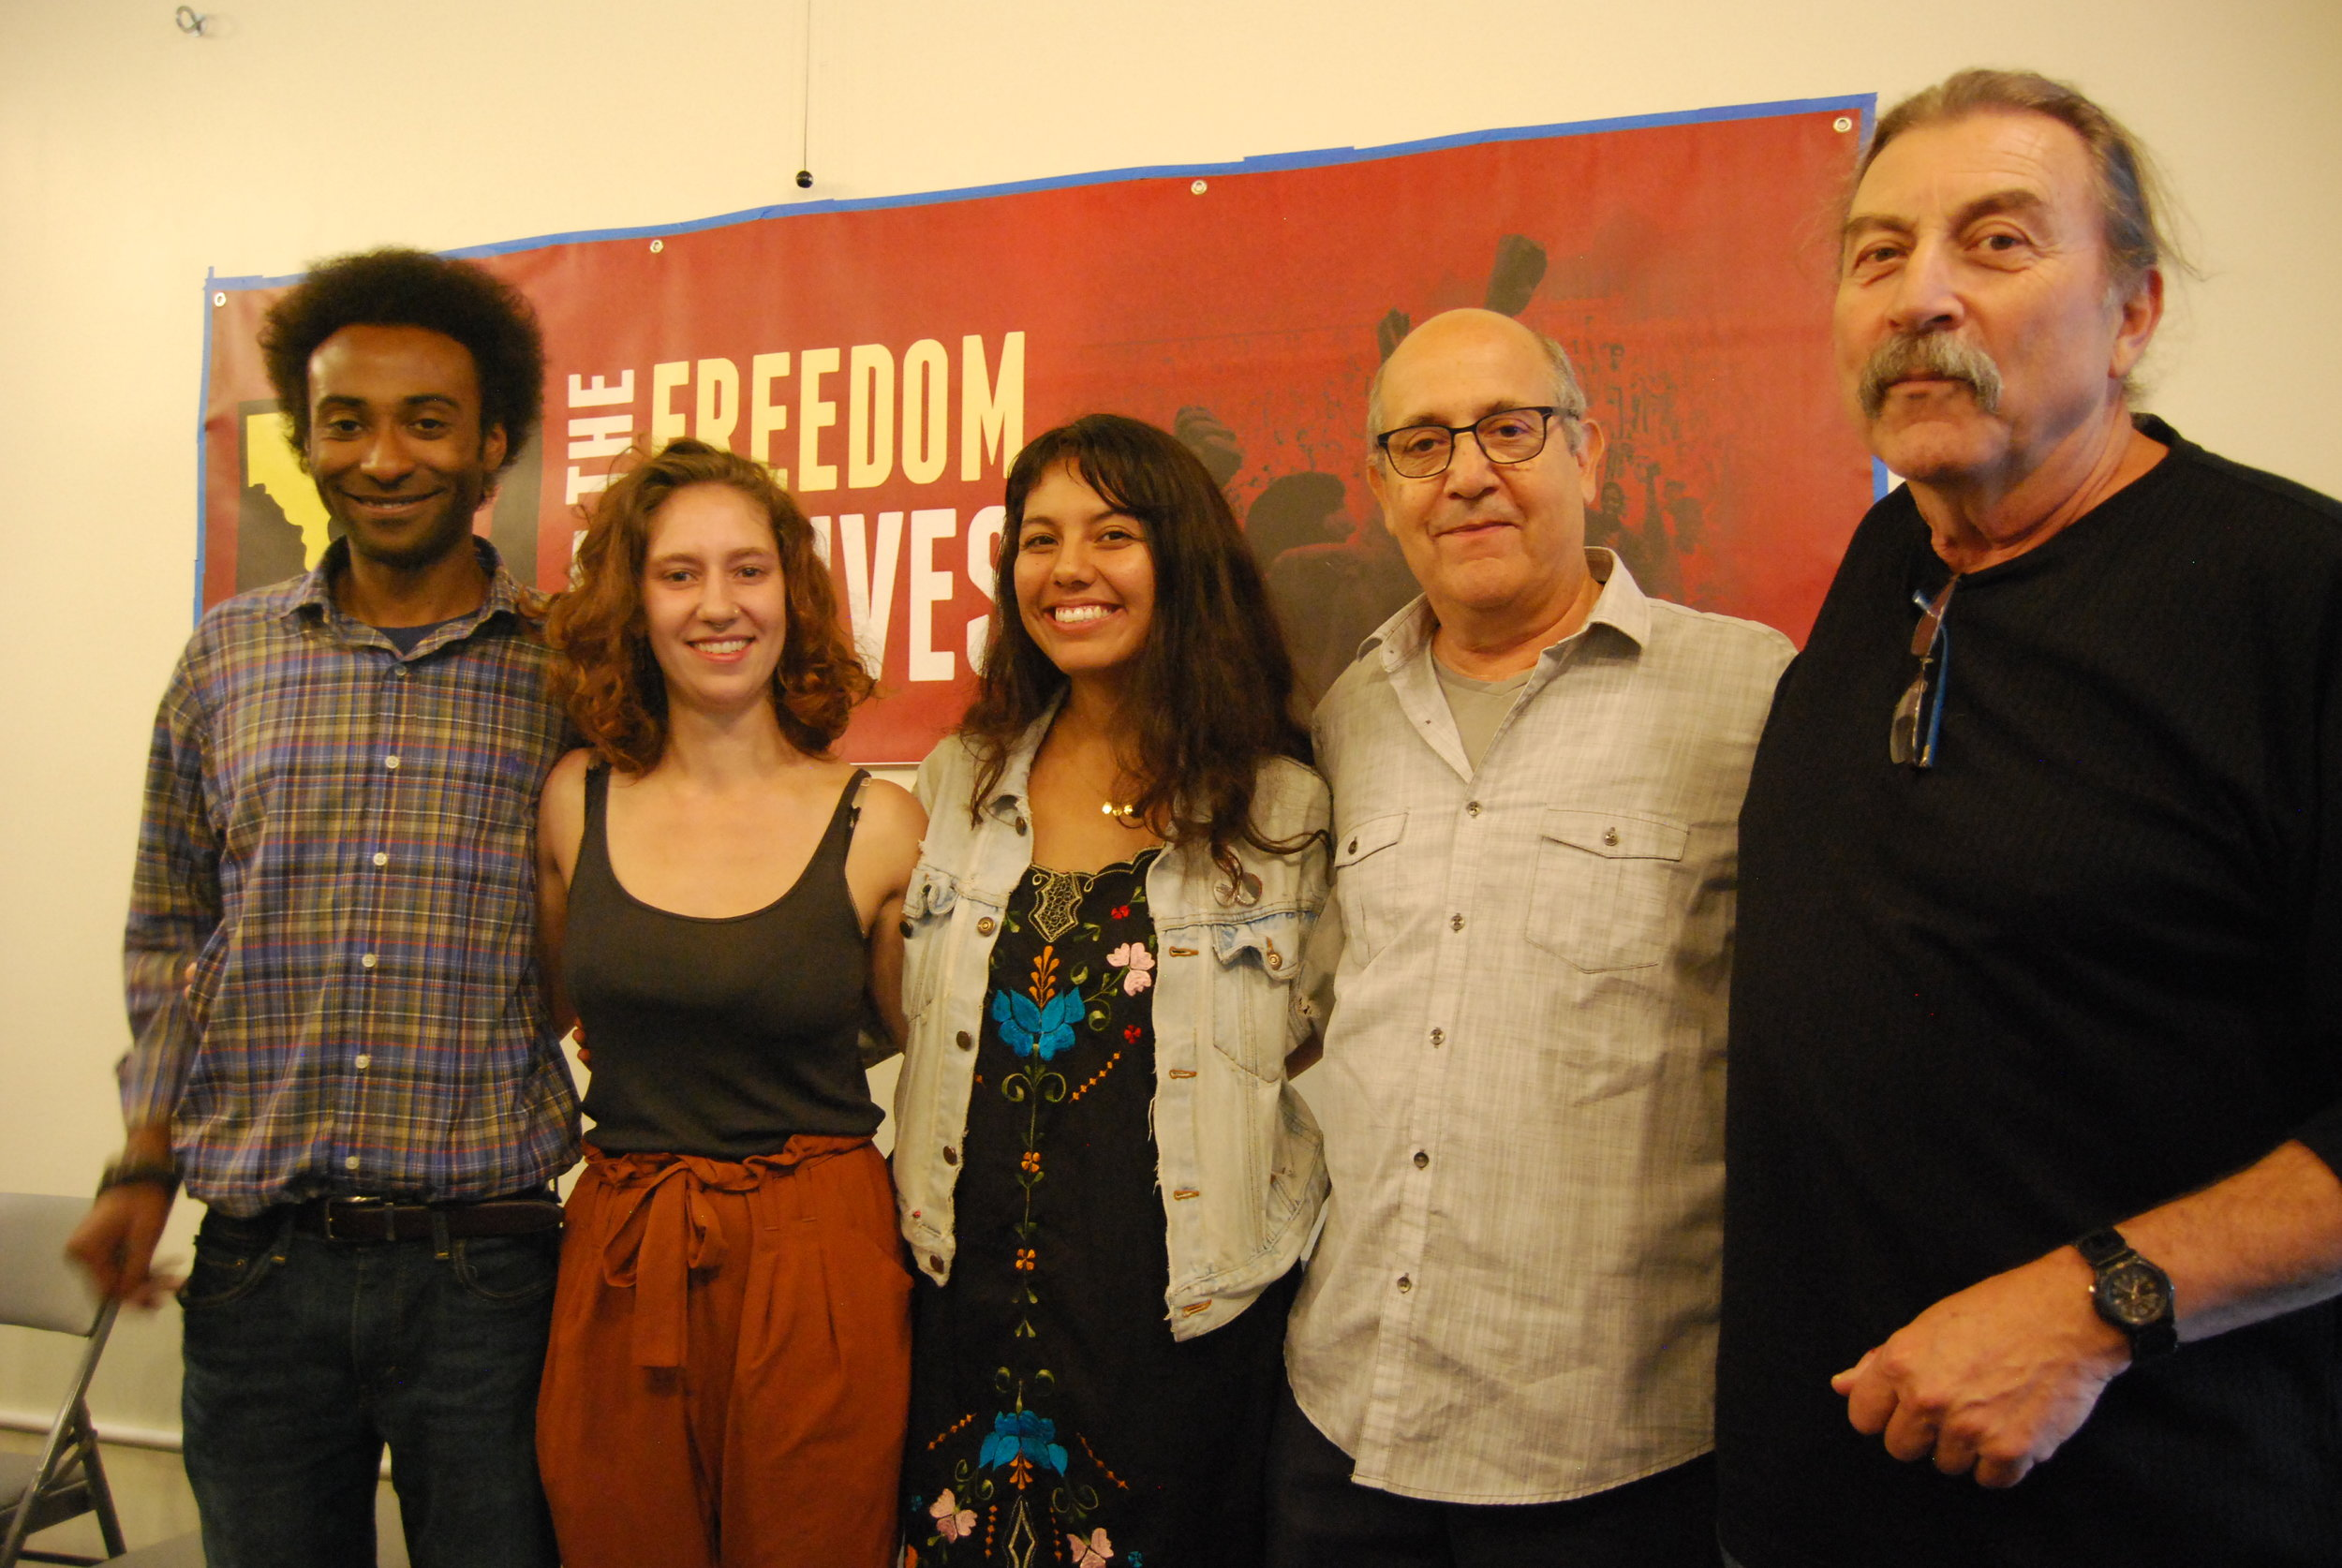 Symbols of Resistance Filmmakers: (from left to right: Nathaniel Moore, Vera Tykulsker, Brenda Montano, Andres Alegria, Claude Marks)